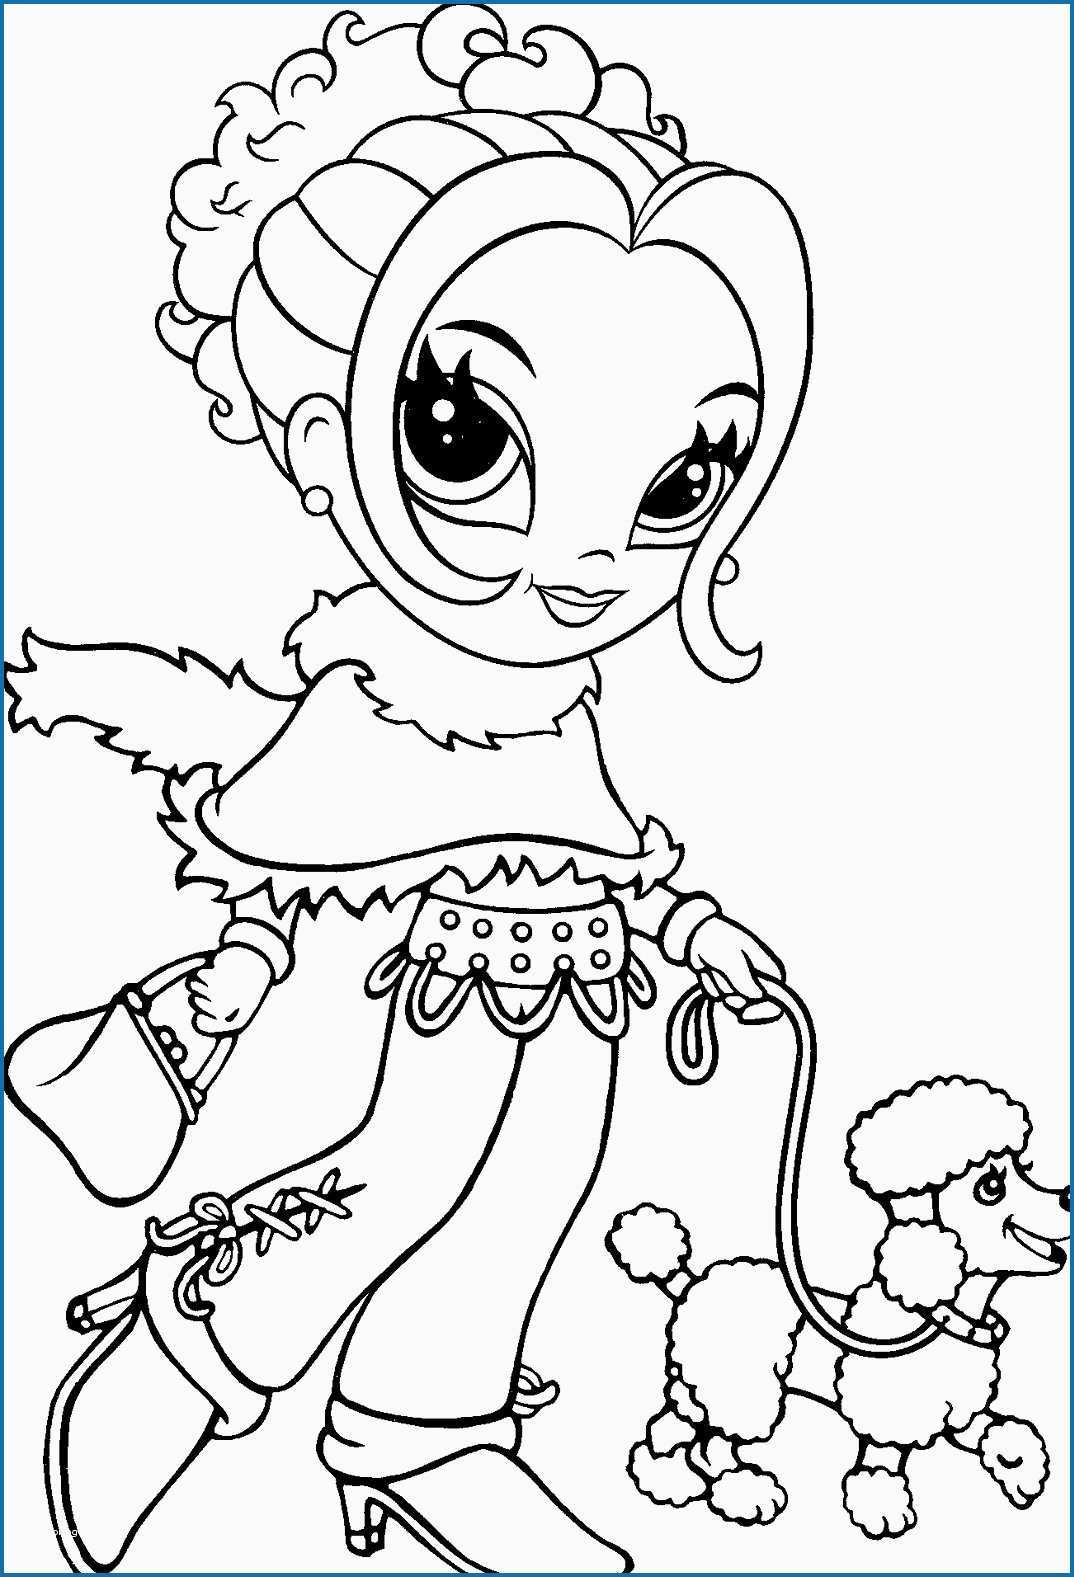 Lisa Frank Coloring Pages Lisa Frank Cat Coloring Pages Good Lisa Frank Coloring Pages Anablog